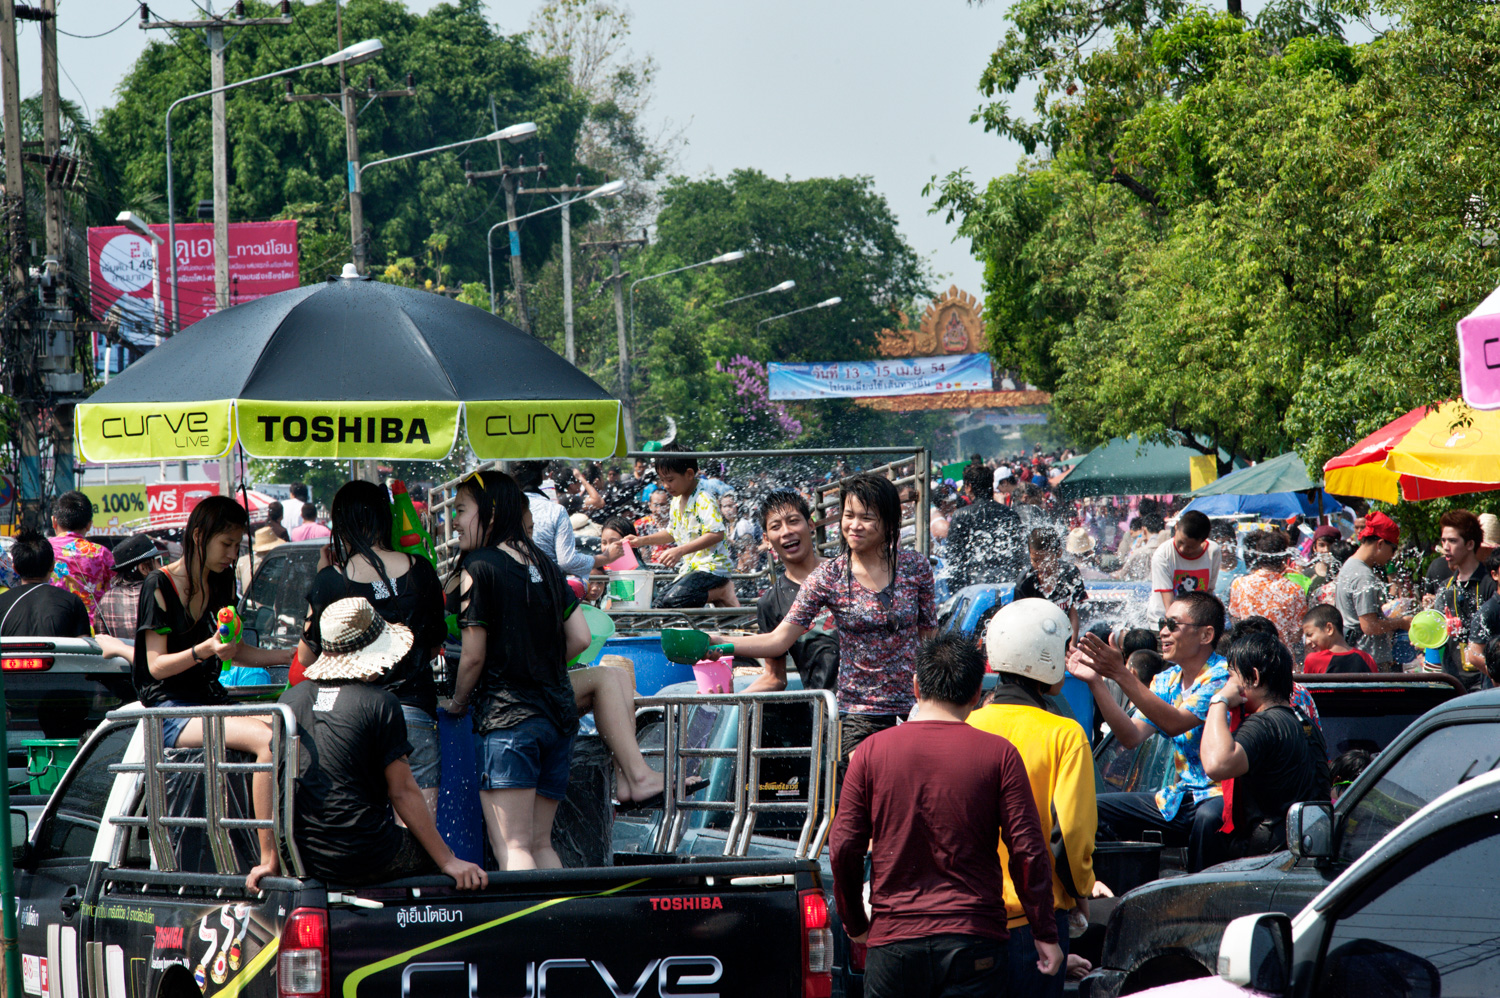 When do you need to obtain a model or property release? Songkran Party in Chiang Mai